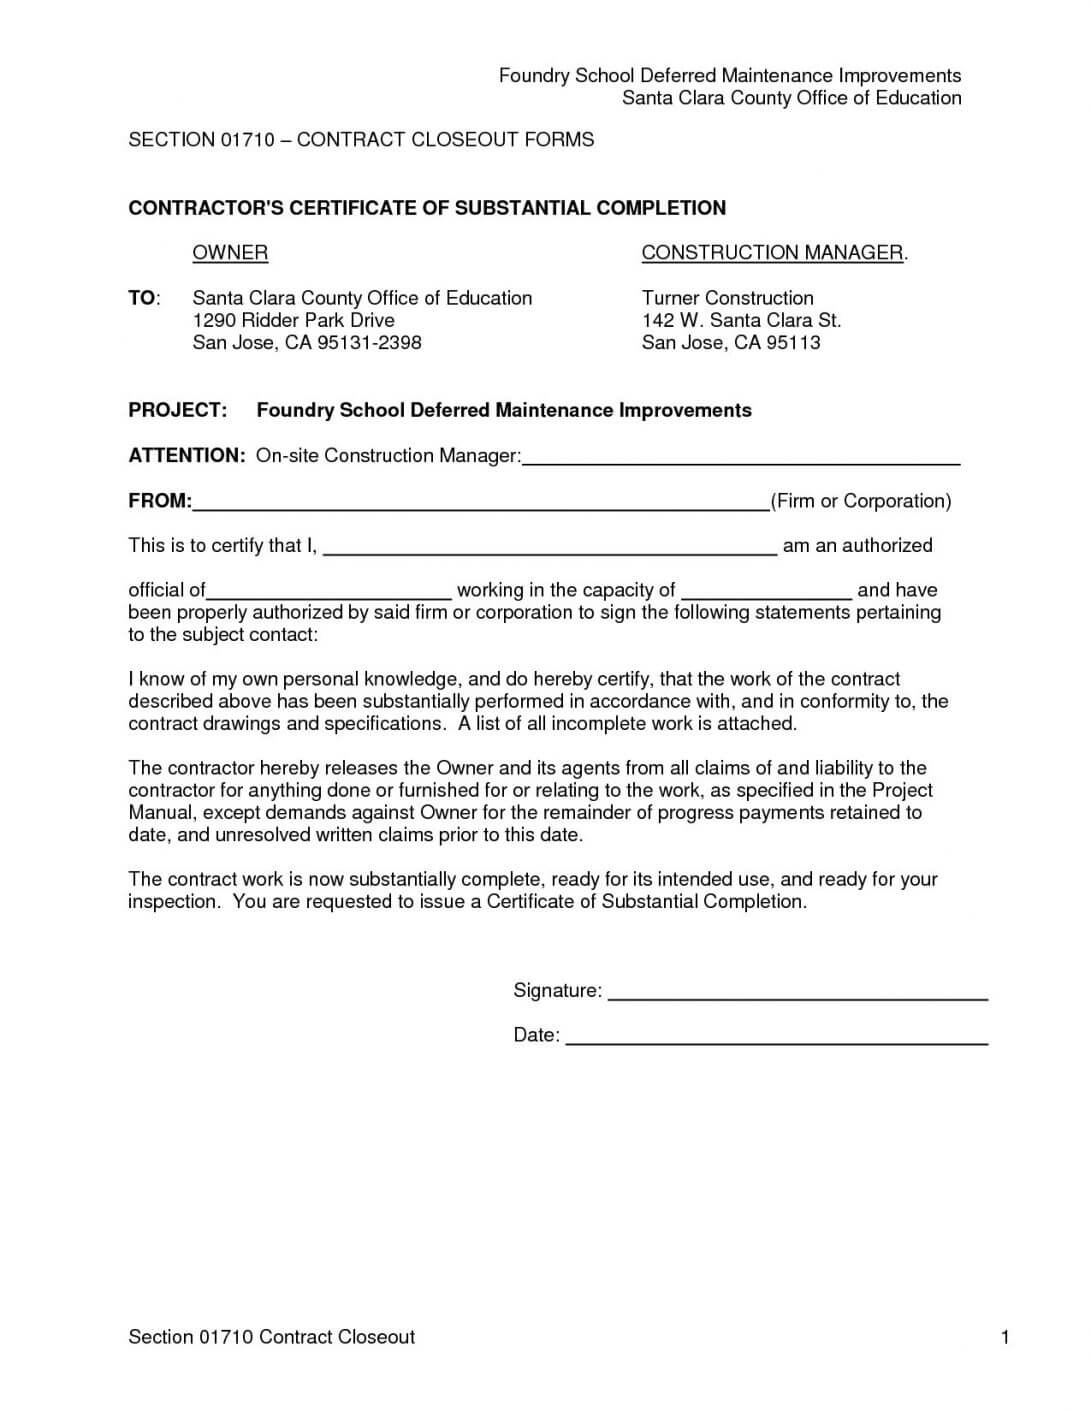 It Project Completion Certificate Sample New Construction With Certificate Of Completion Template Construction